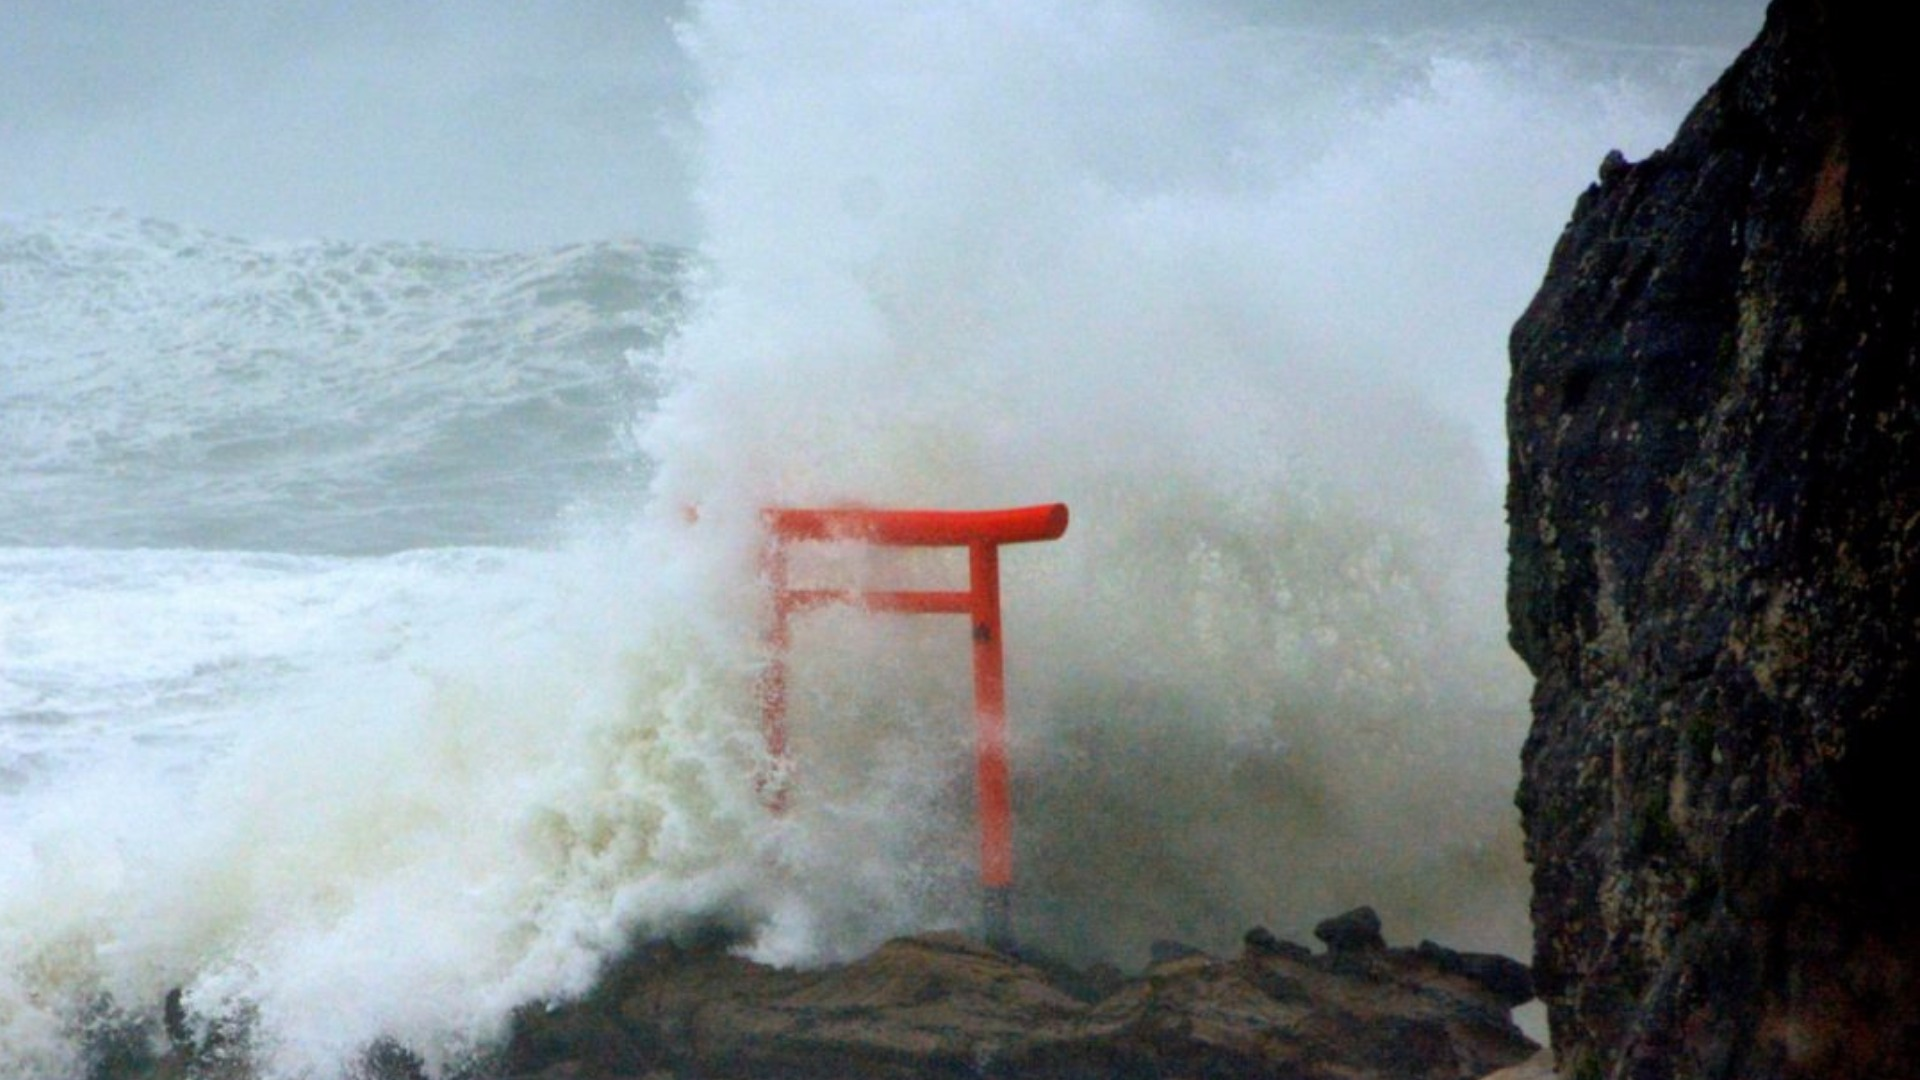 Japan typhoon kills 9 in elderly home